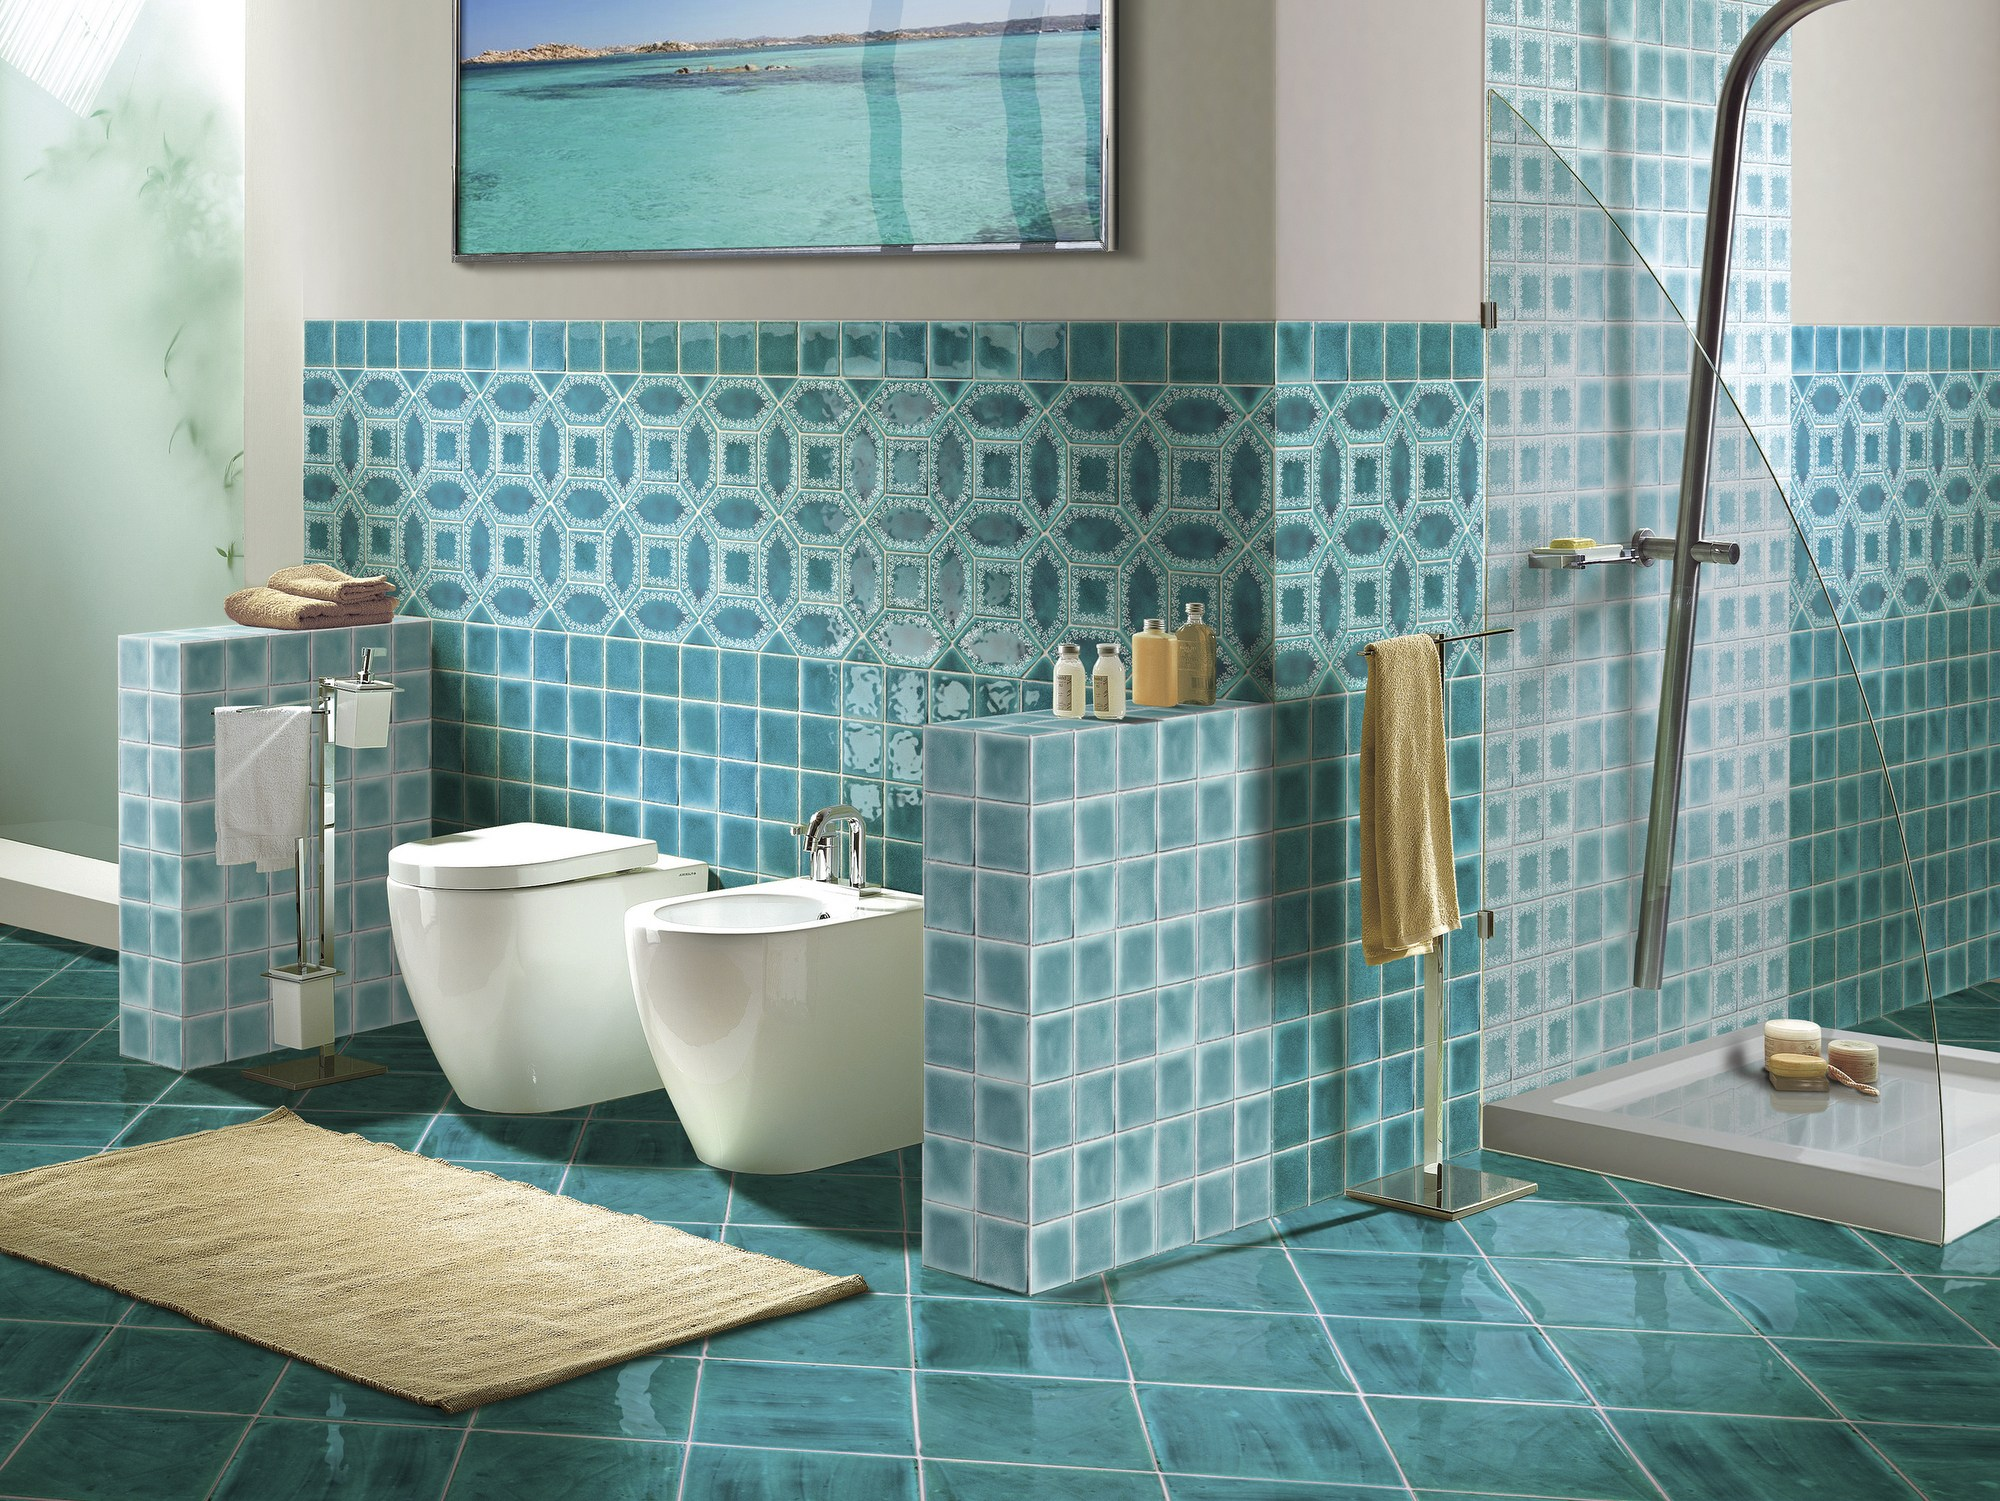 Piastrelle bagno blu mare. simple modern rooms with colorful